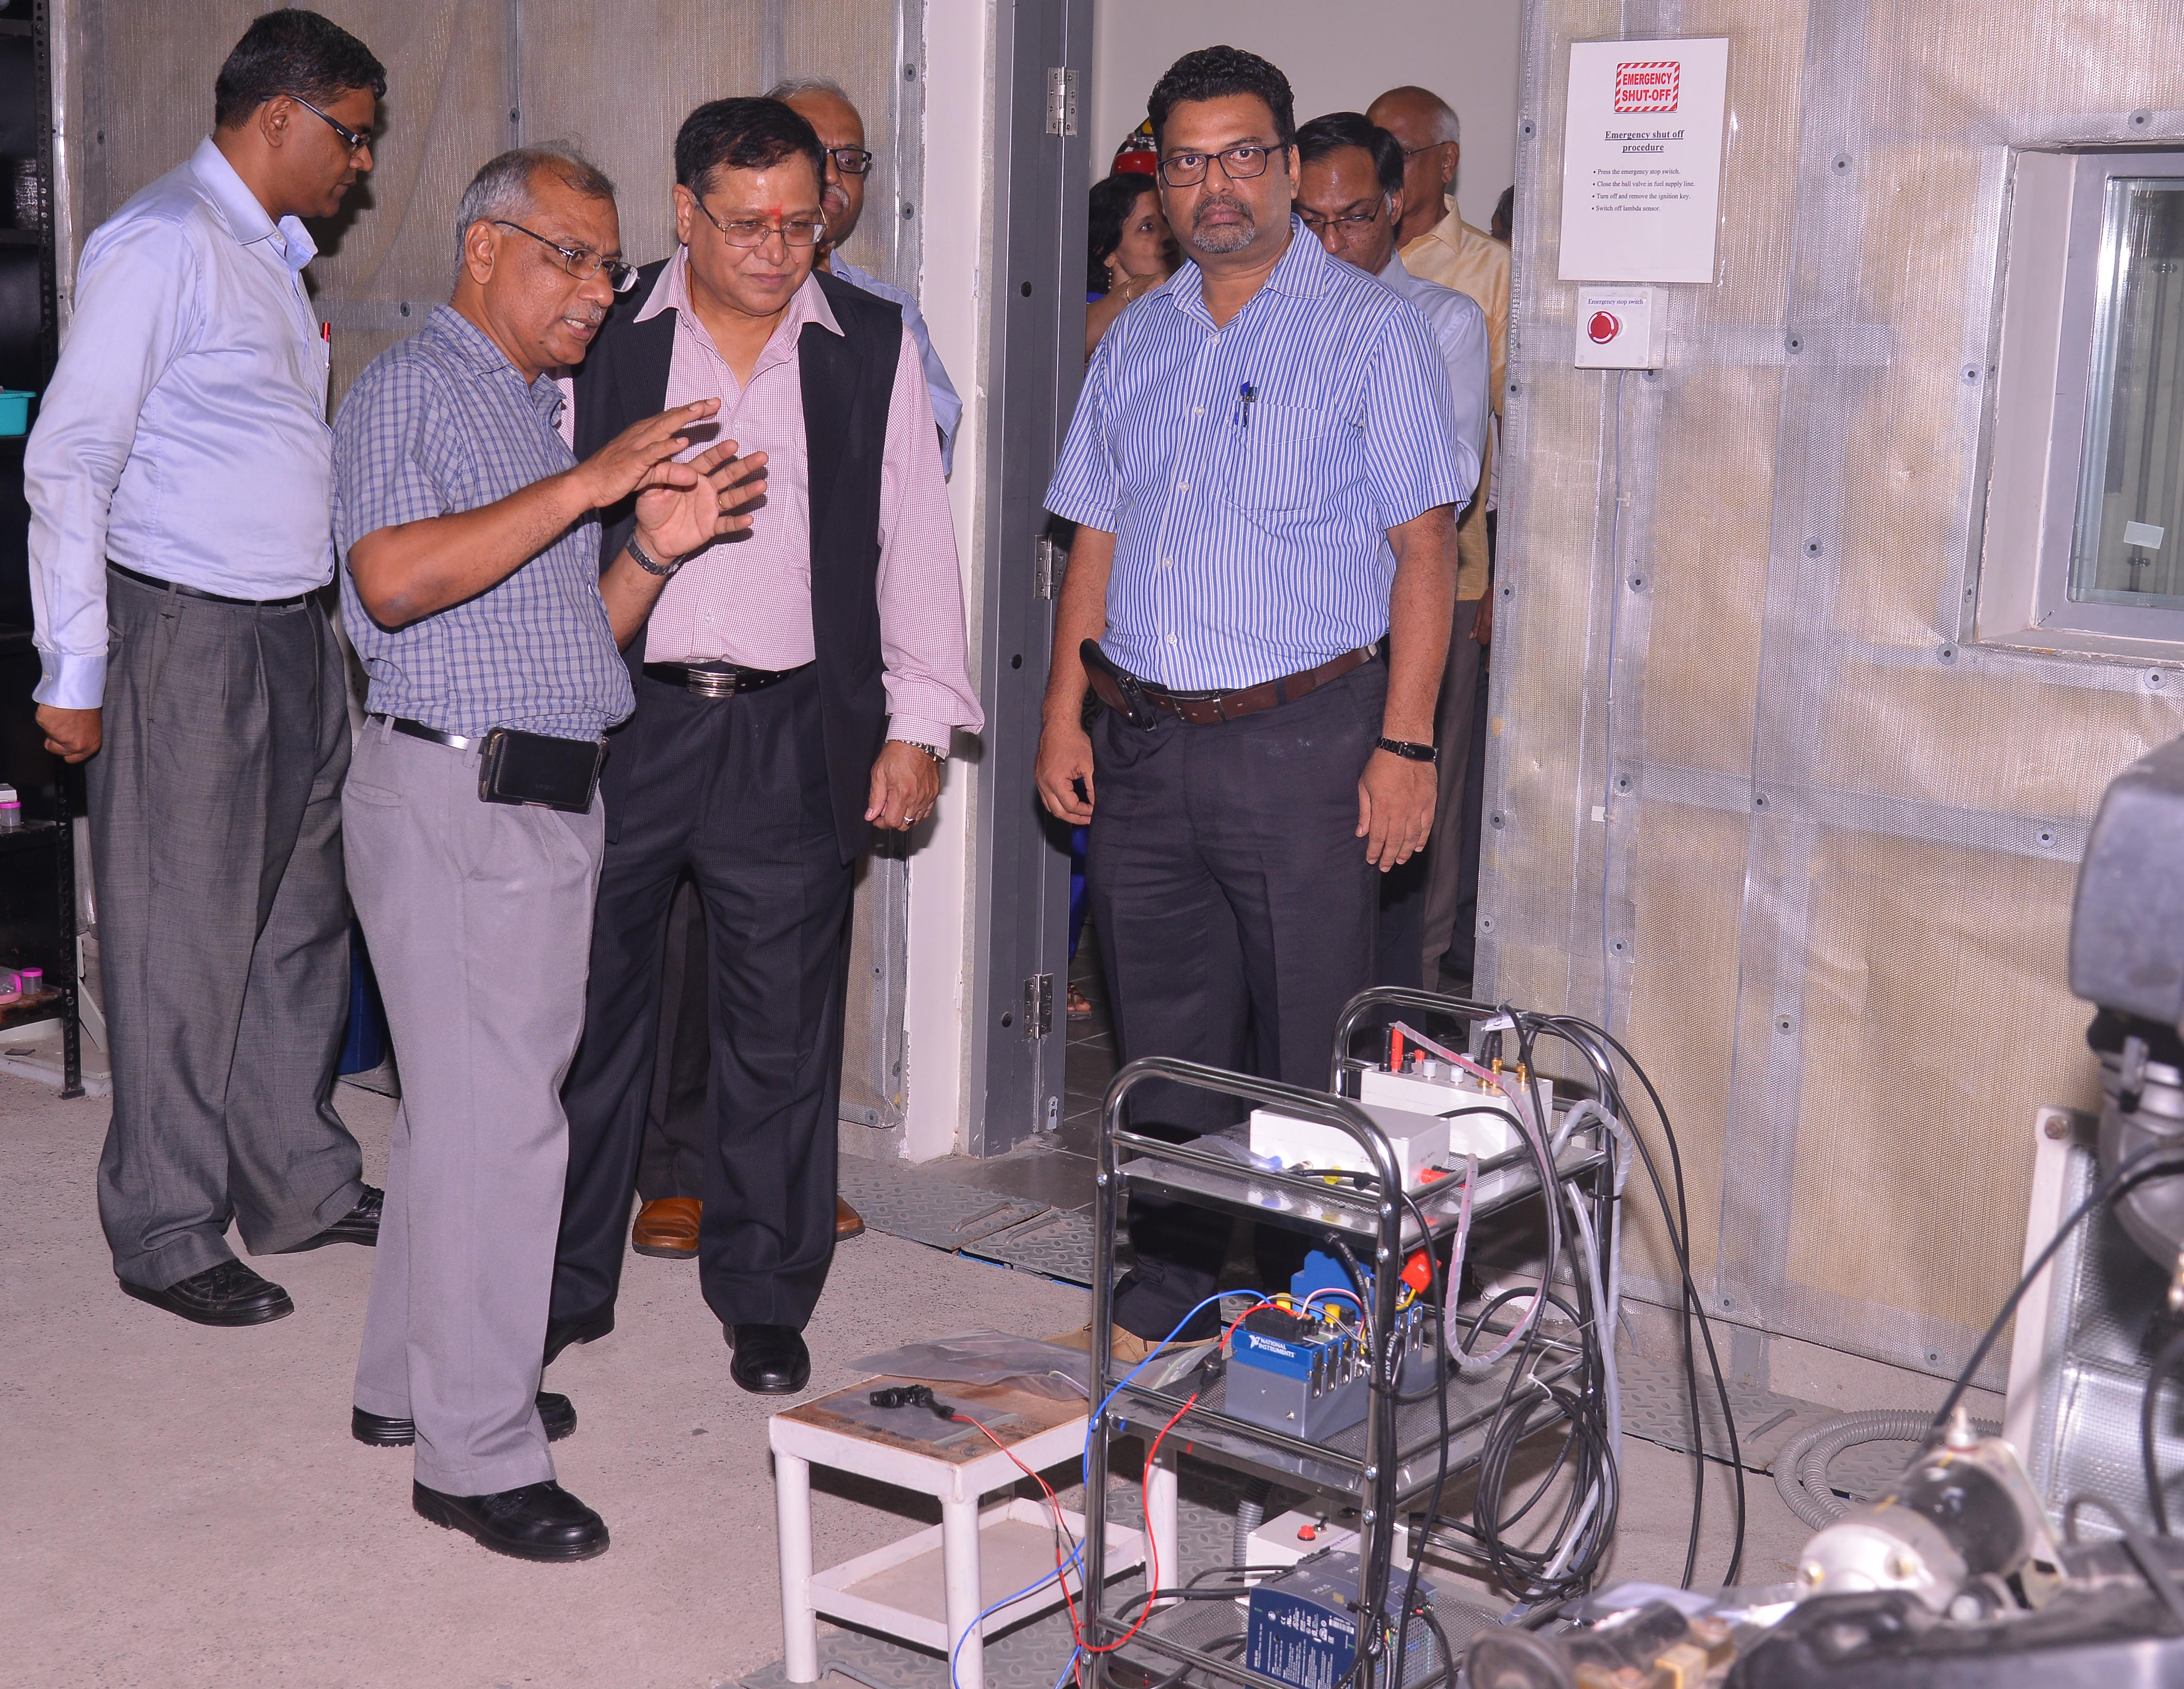 The world's largest combustion research centre established at IIT Madras